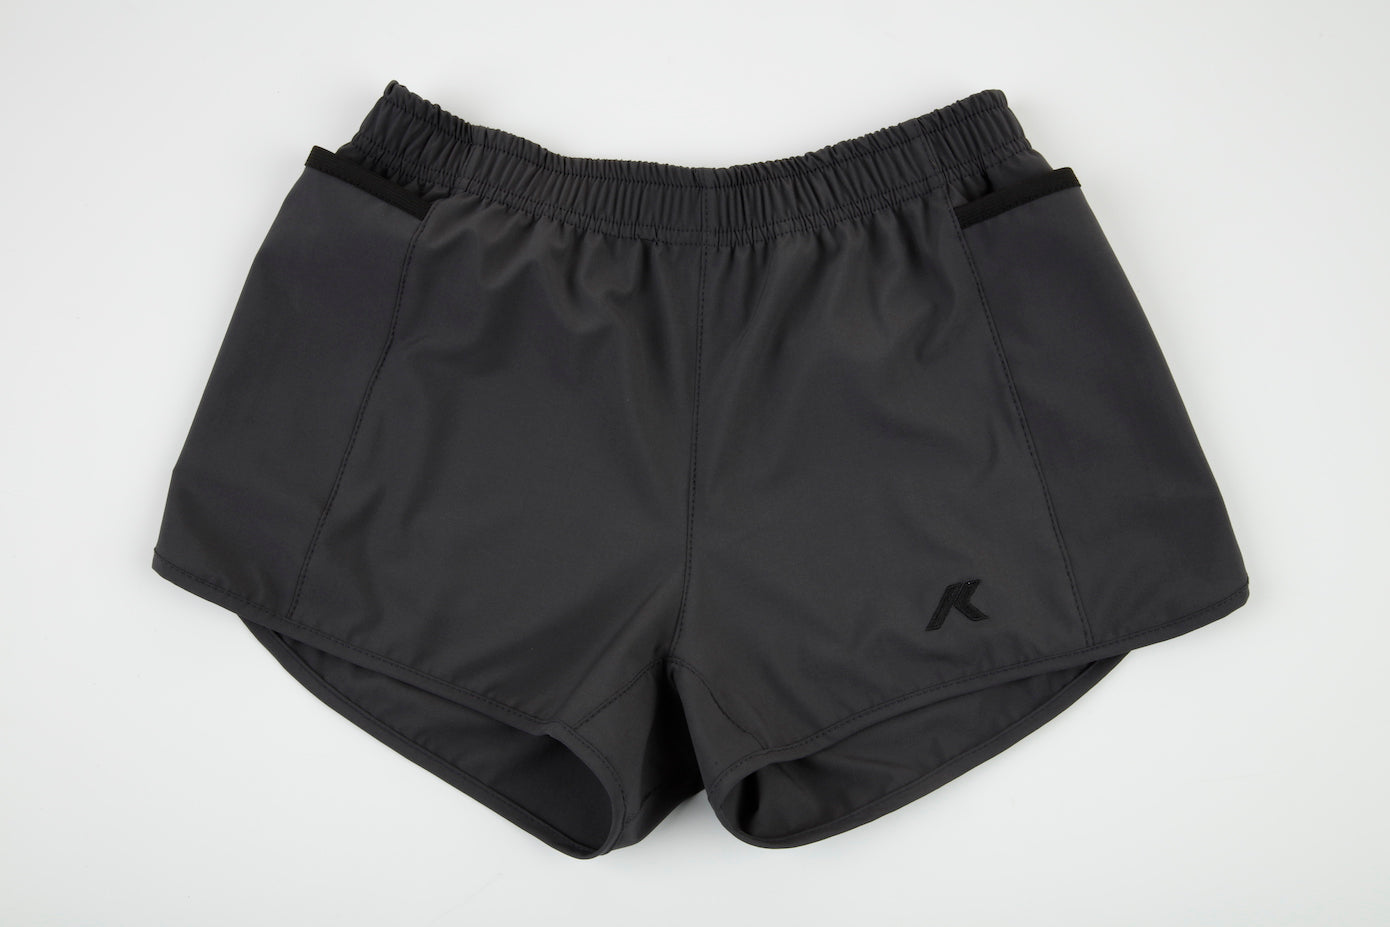 gray and black women's shorts phone pockets